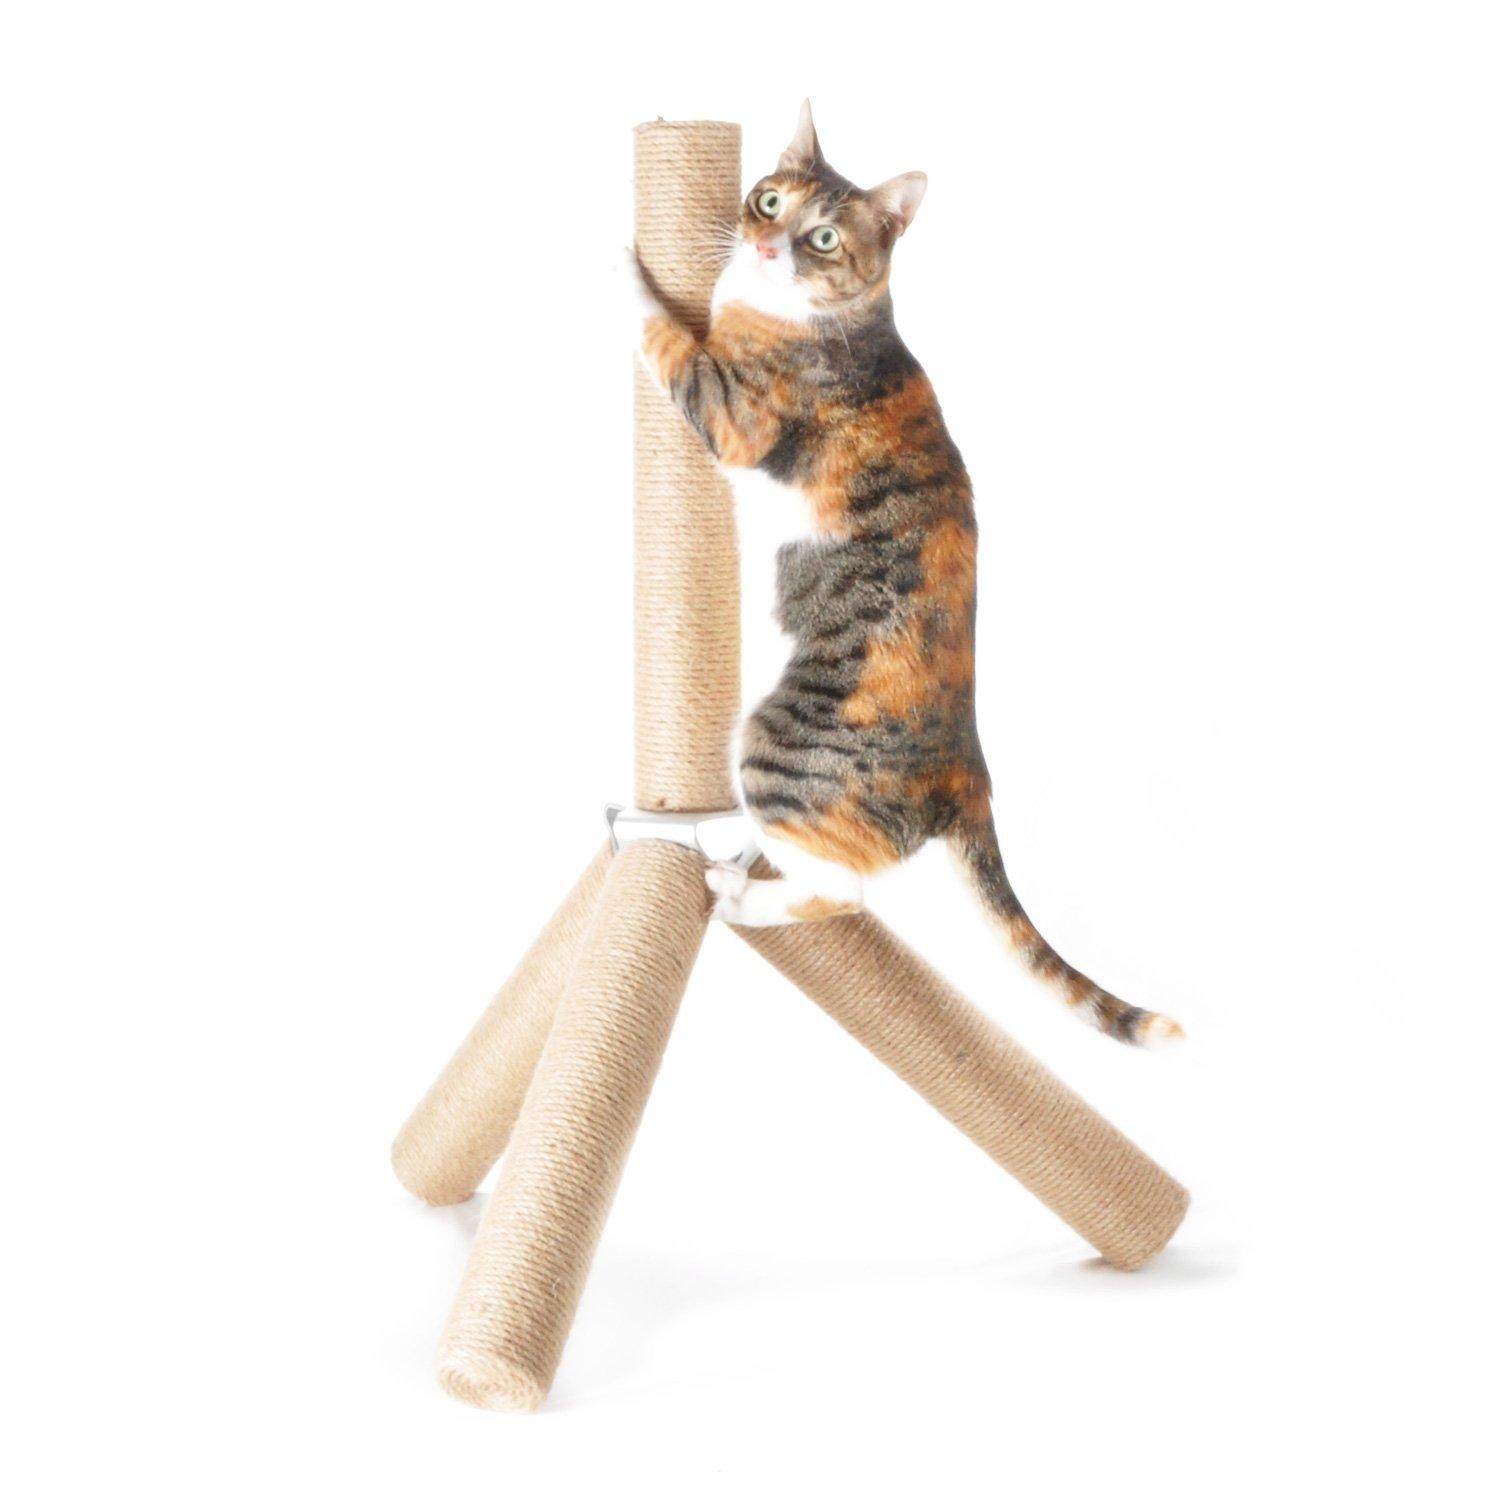 [NEW] 4CLAWS Jute Tripod Scratching Post 30'',White,30 x 21 x 21 in by 4CLAWS